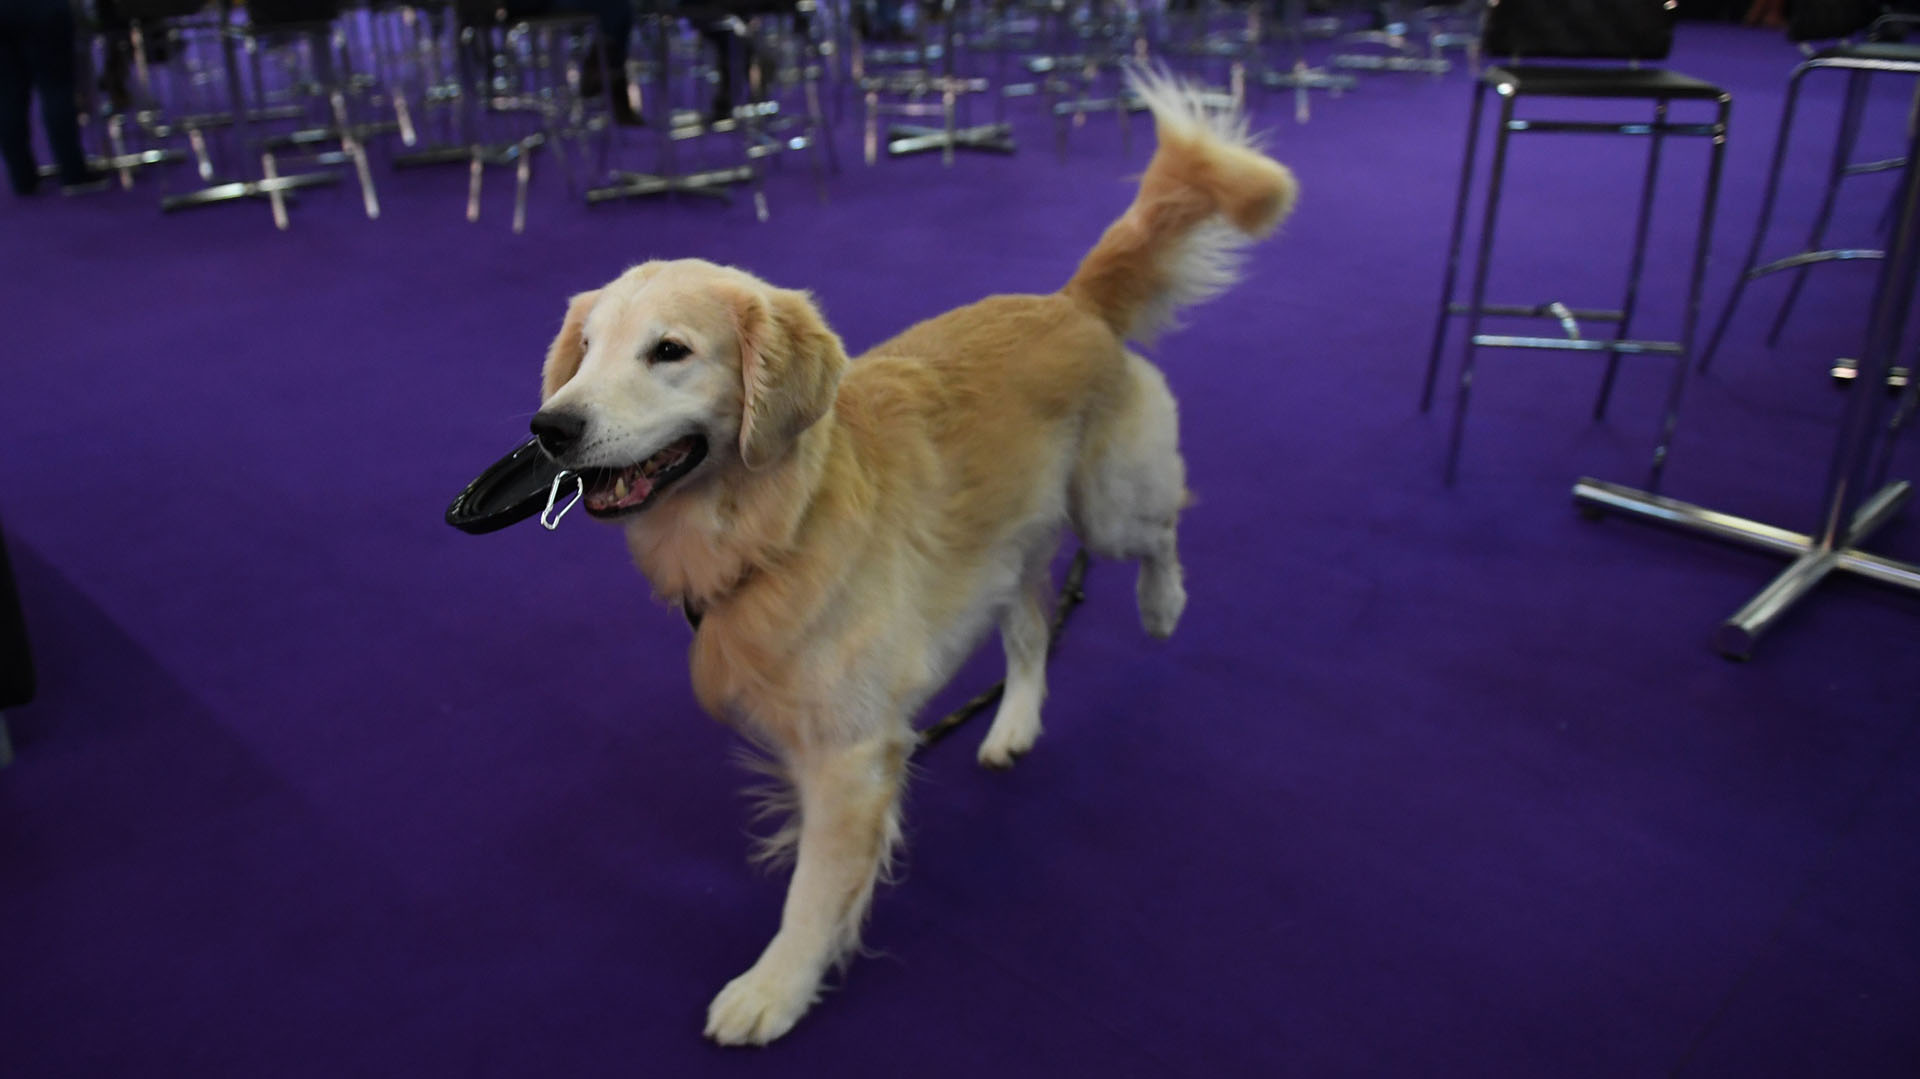 A Golden Retriever waits to competes in the 6th Annual Masters Agility Championship as the The American Kennel Club and Westminster Kennel Club present Meet & Compete on February 9, 2019, at Piers 92 and 94 in New York. (Photo by TIMOTHY A. CLARY / AFP)